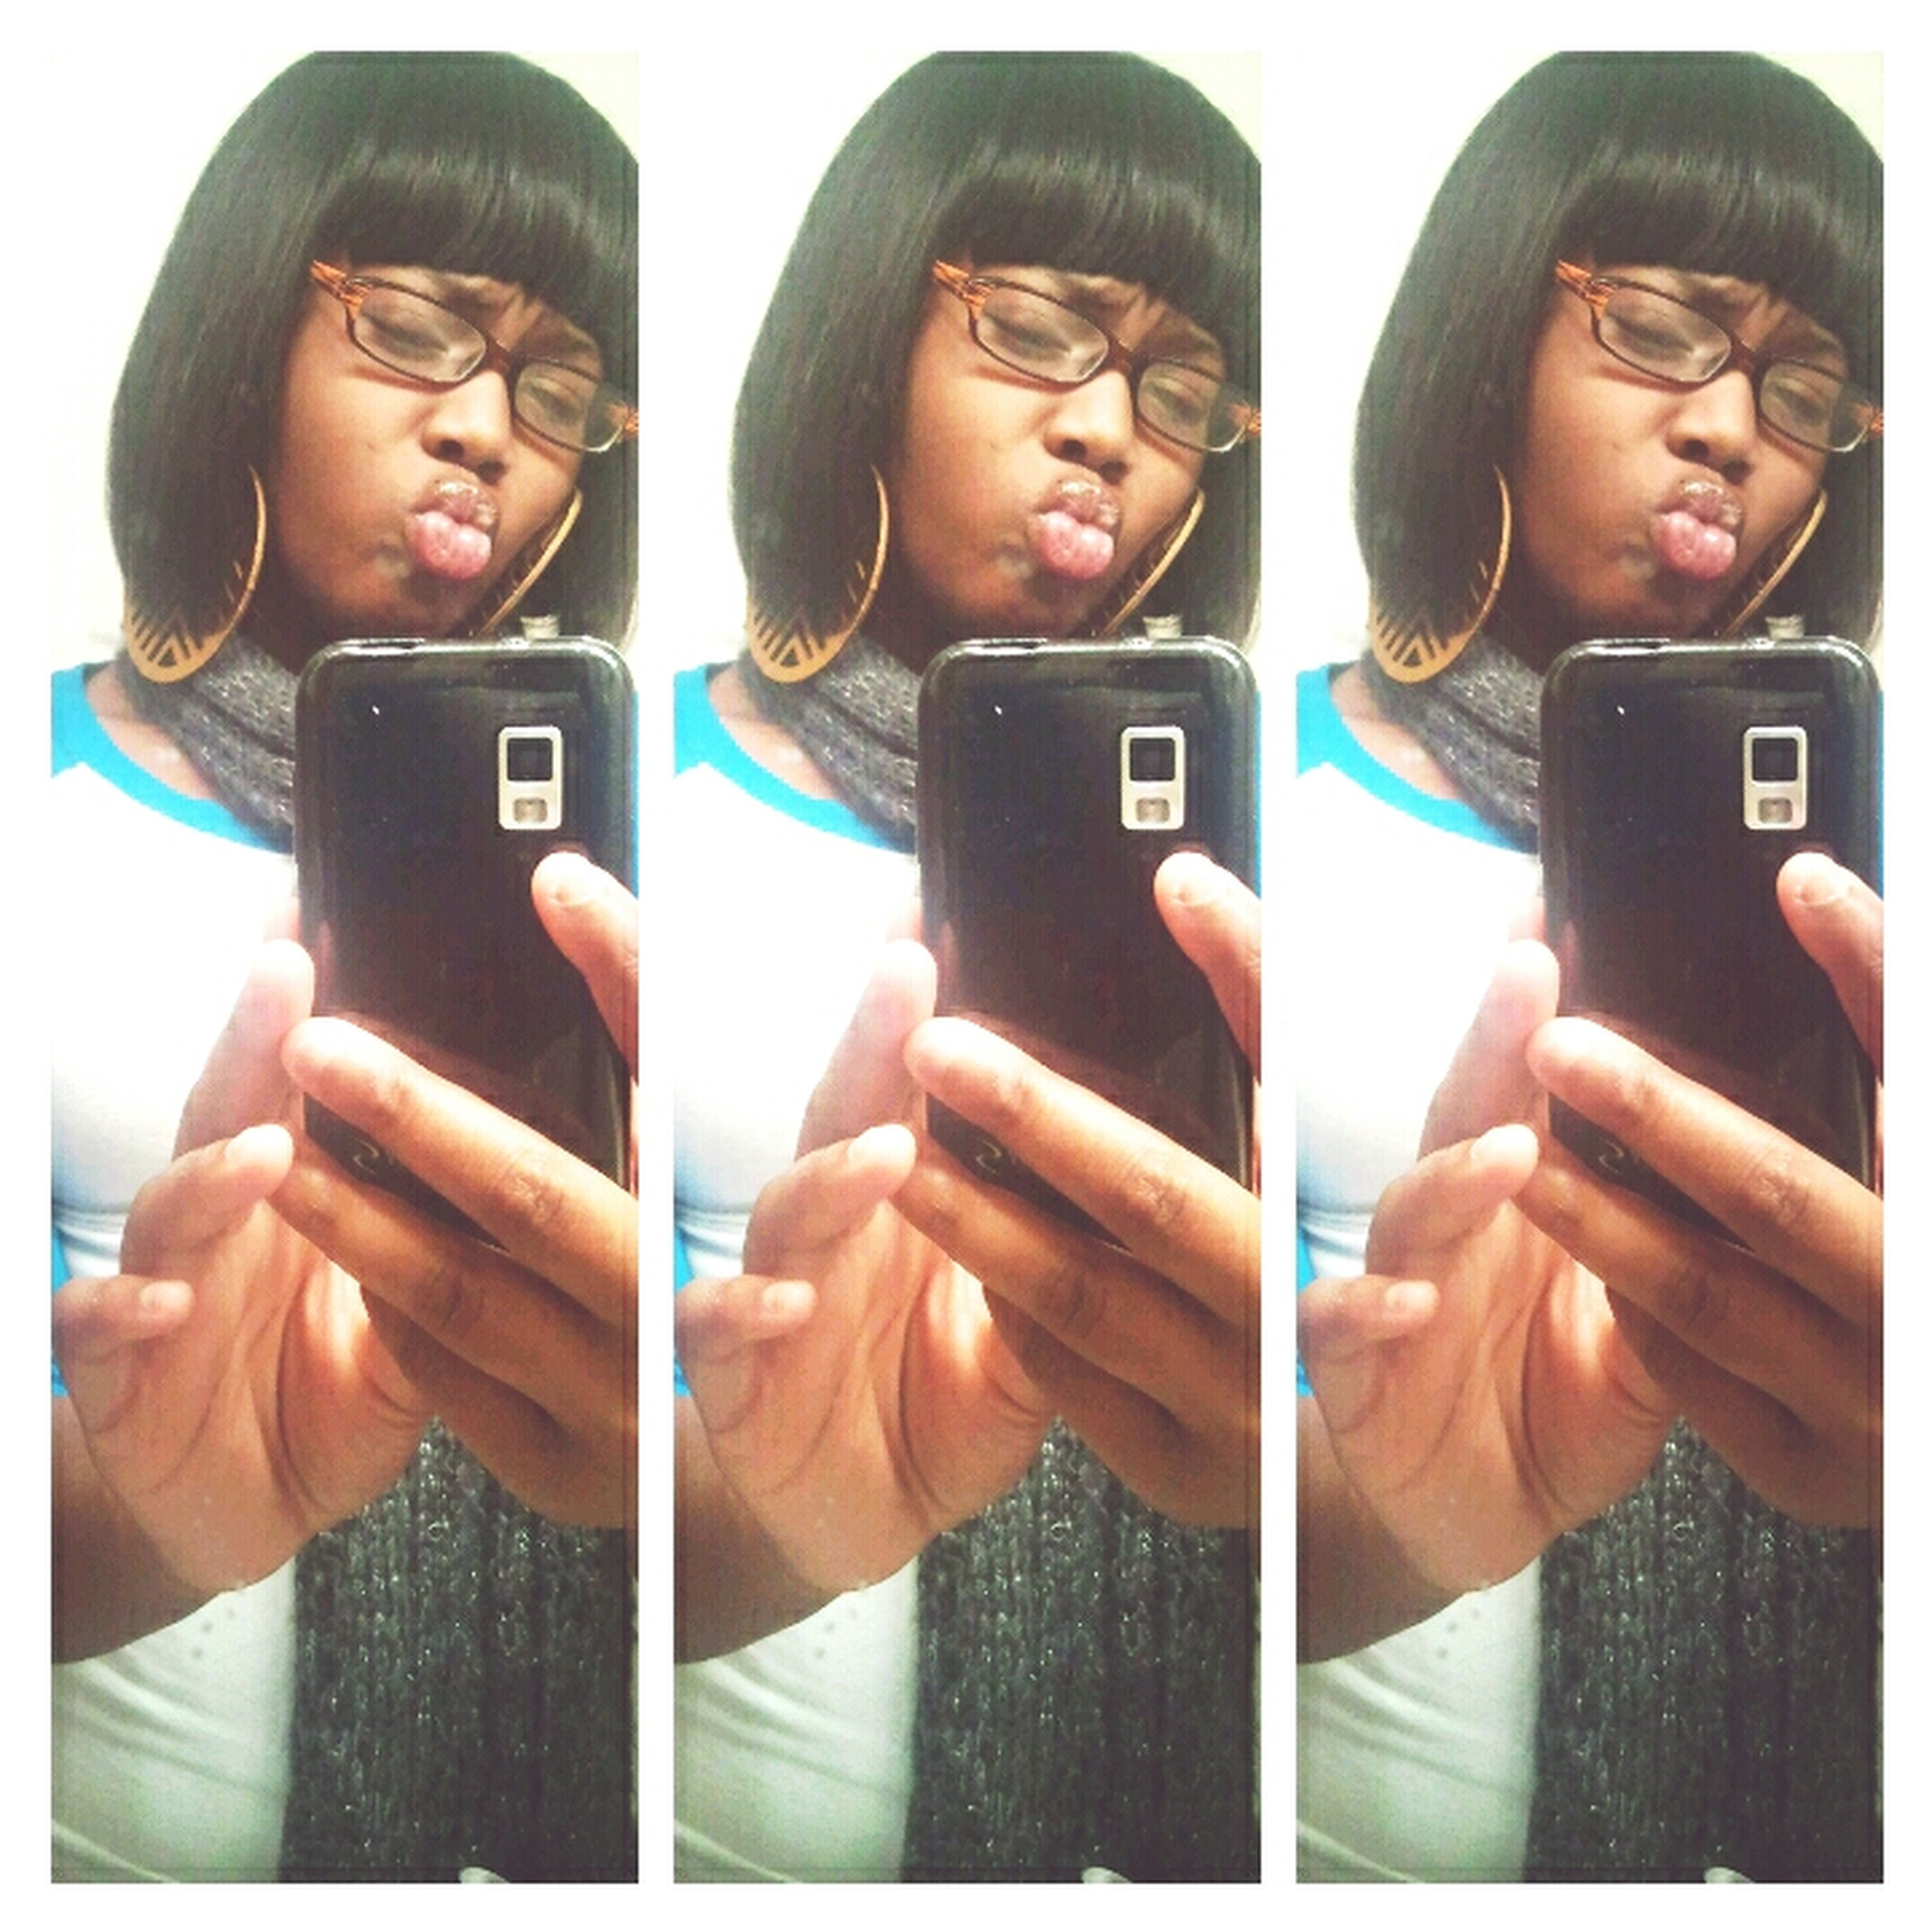 Playing Around..old Picture Though.